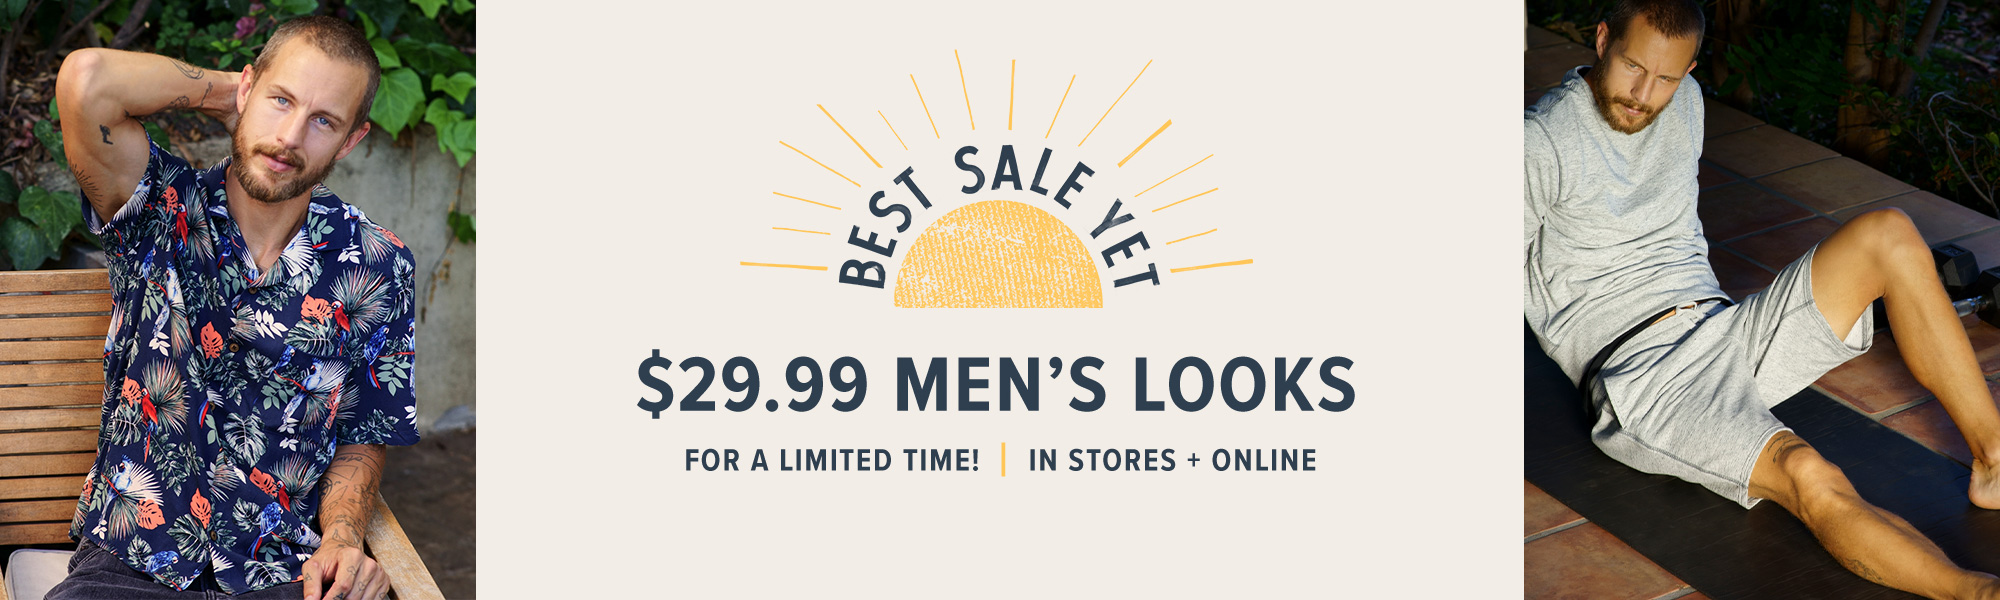 BEST SALE YET: $29.99 Shirts & Shorts for Him